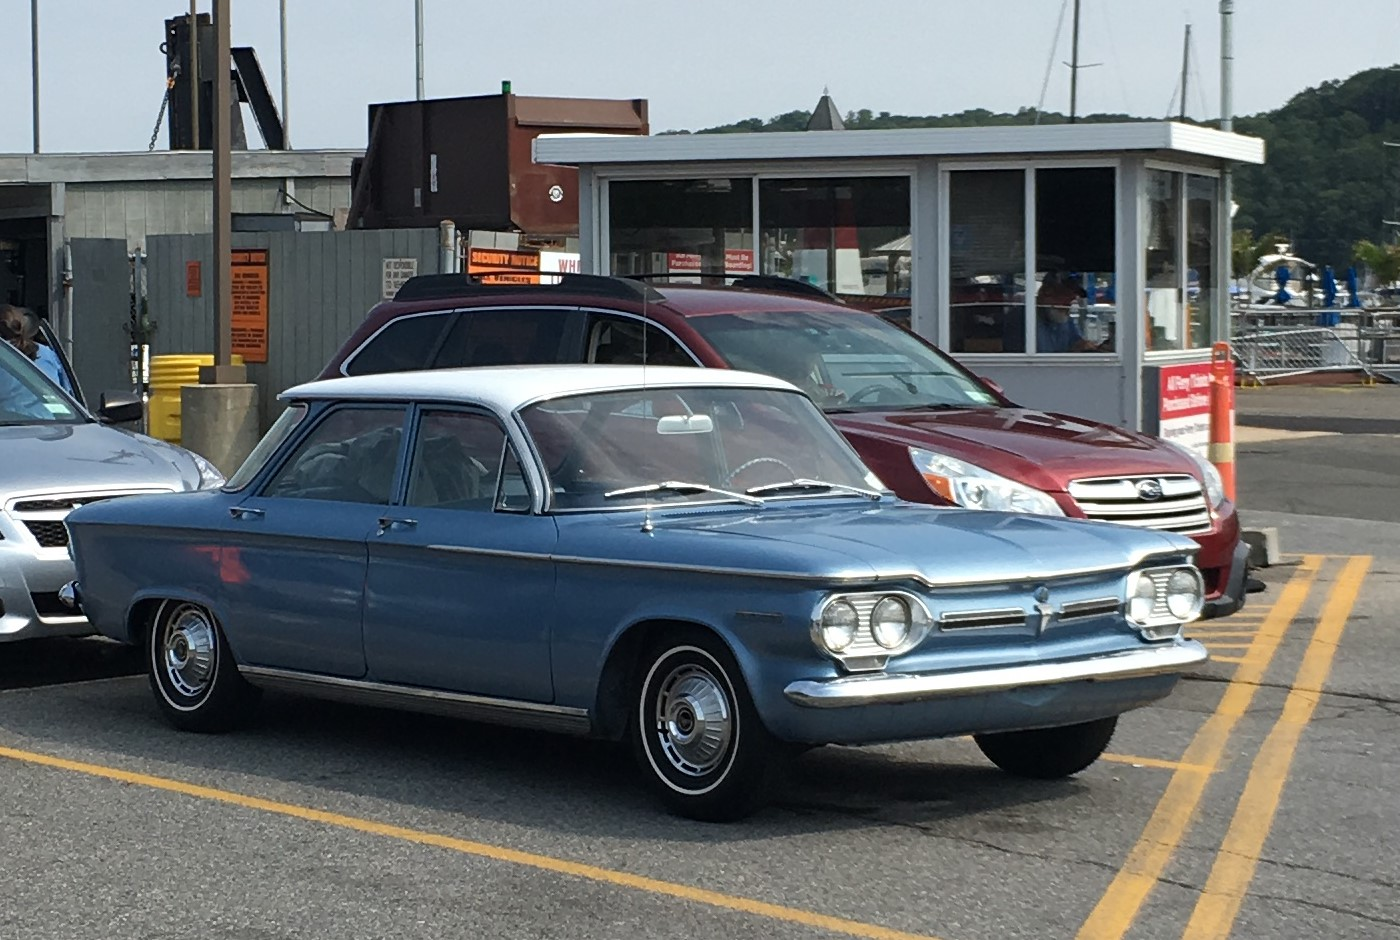 1962 Corvair 700 Sedan Electrical Technical Antique Automobile Club Of America Discussion Forums